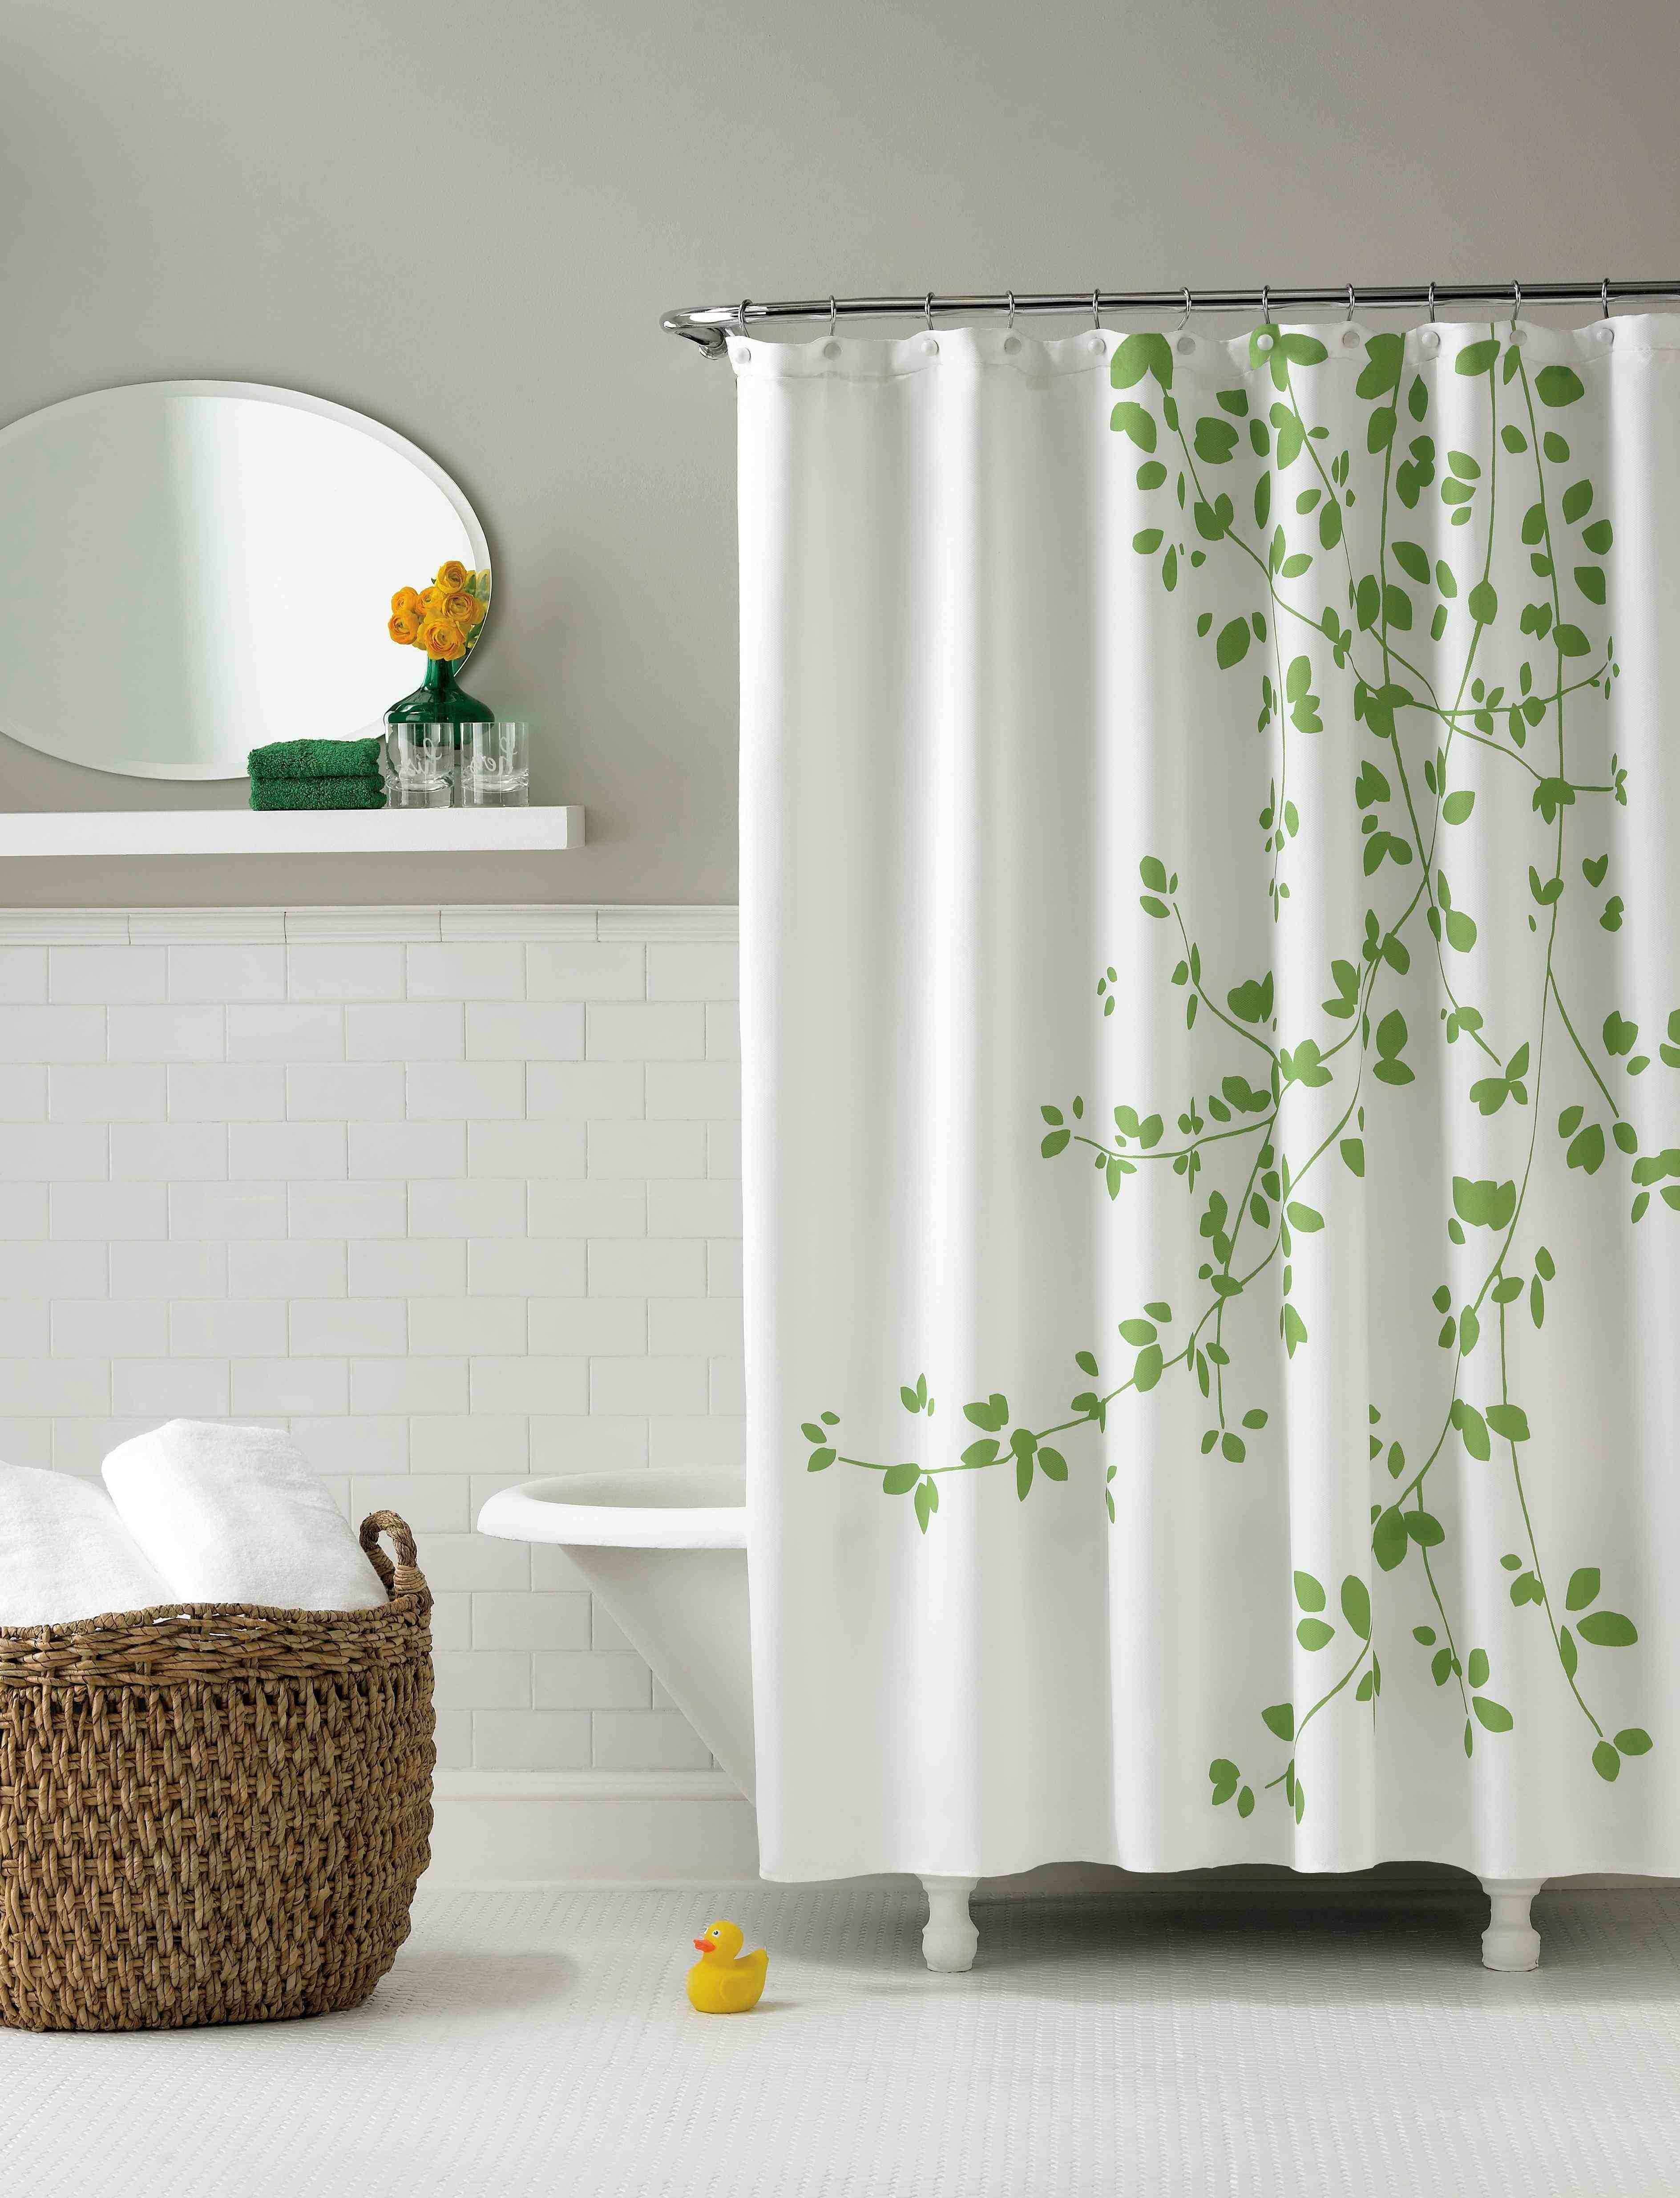 34 Best Purple and Teal Shower Curtain